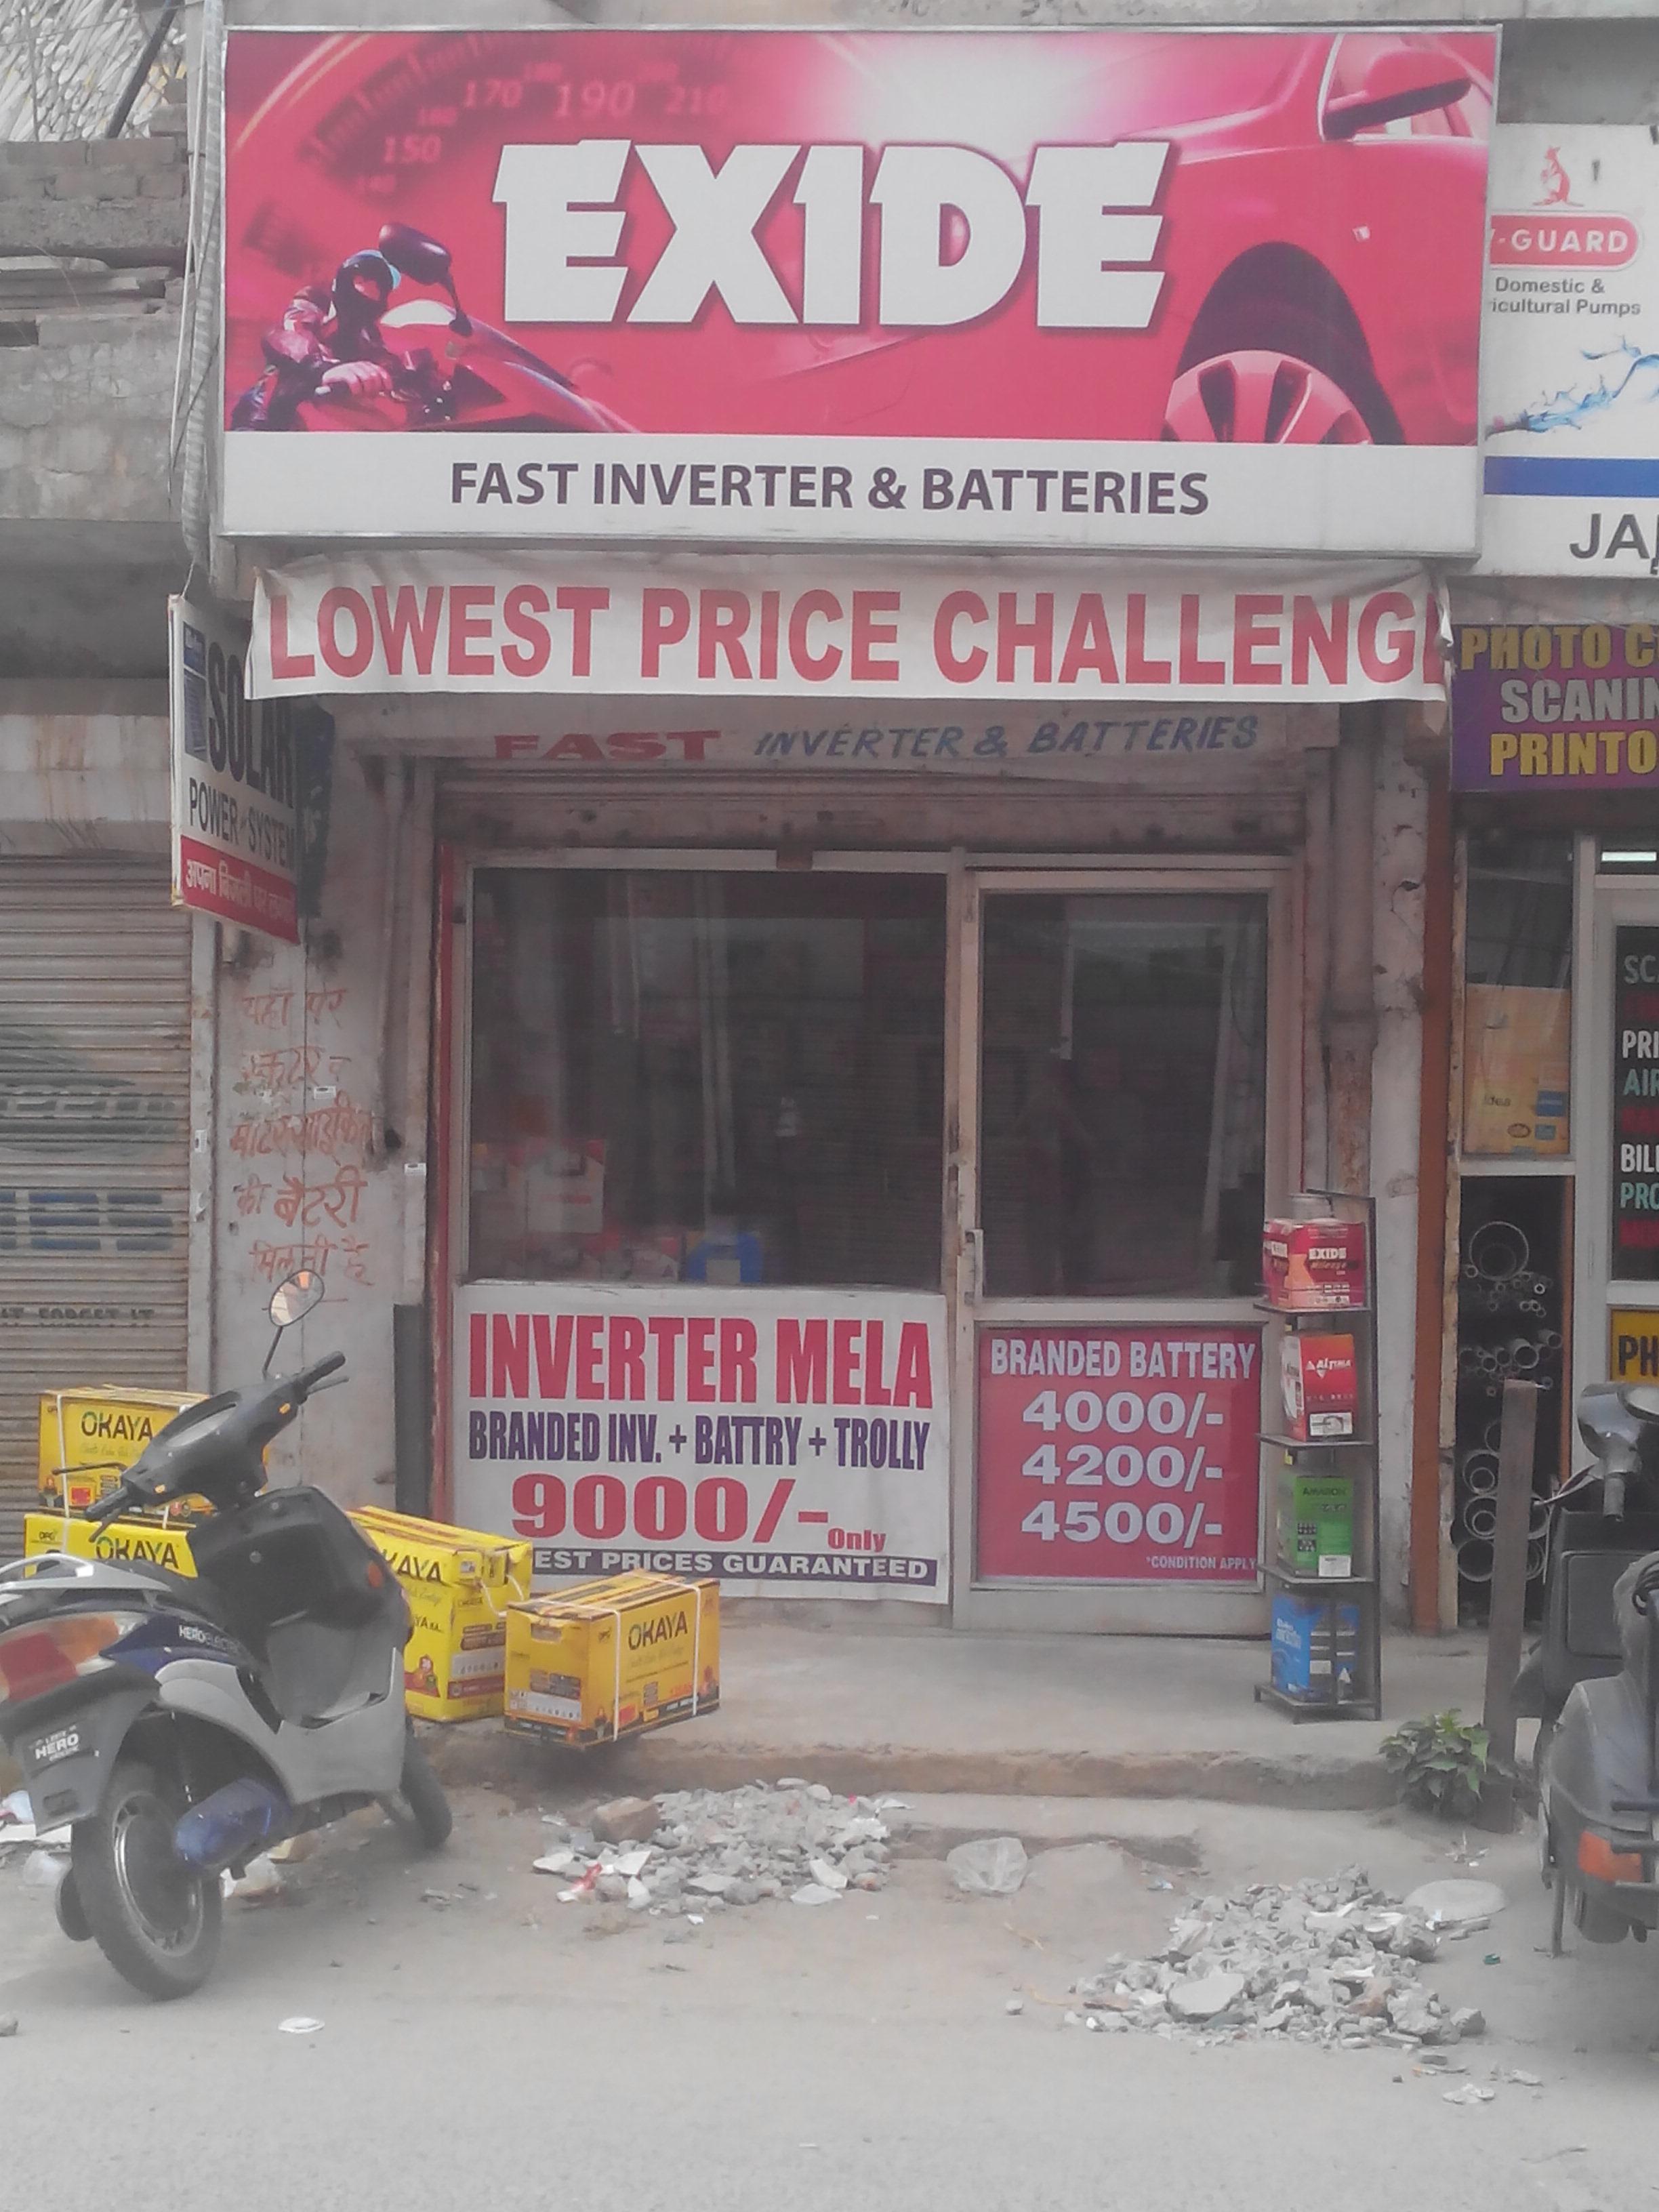 Fast Inverter & Batteries